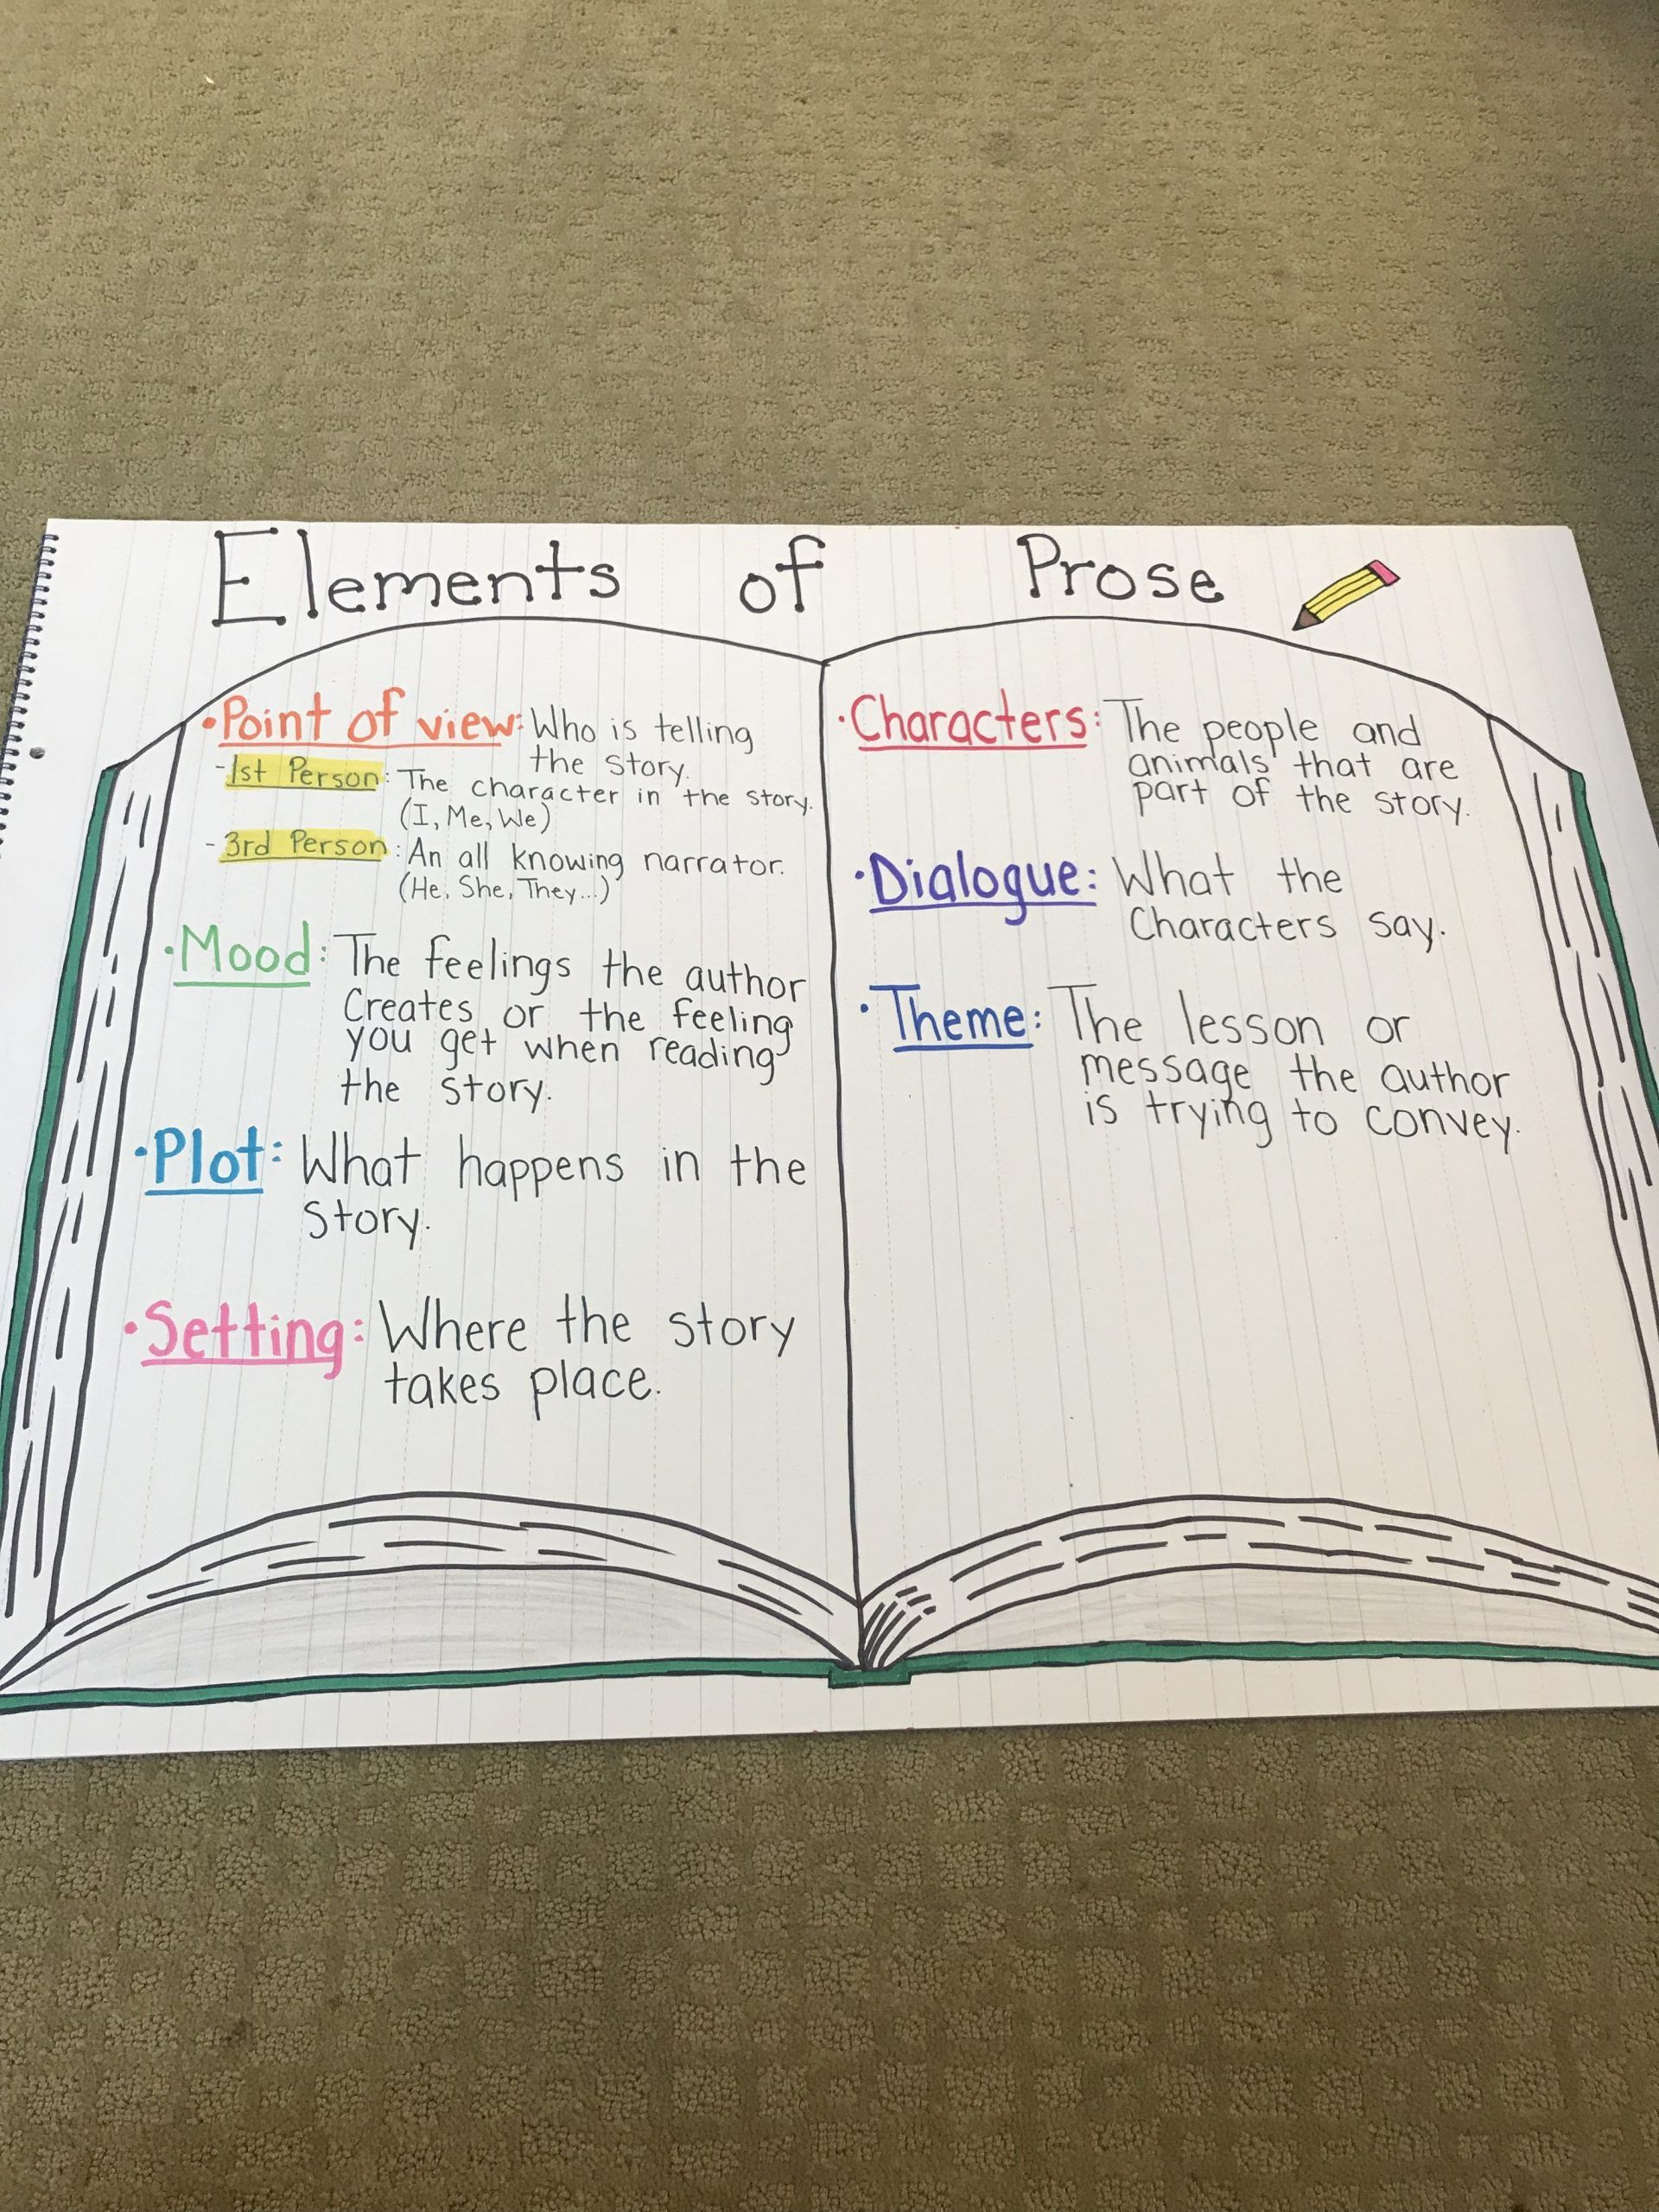 "medium resolution of Story Elements Worksheet 4th Grade Elements Of Prose"" Anchor Chart 4th Grade    Anchor charts"